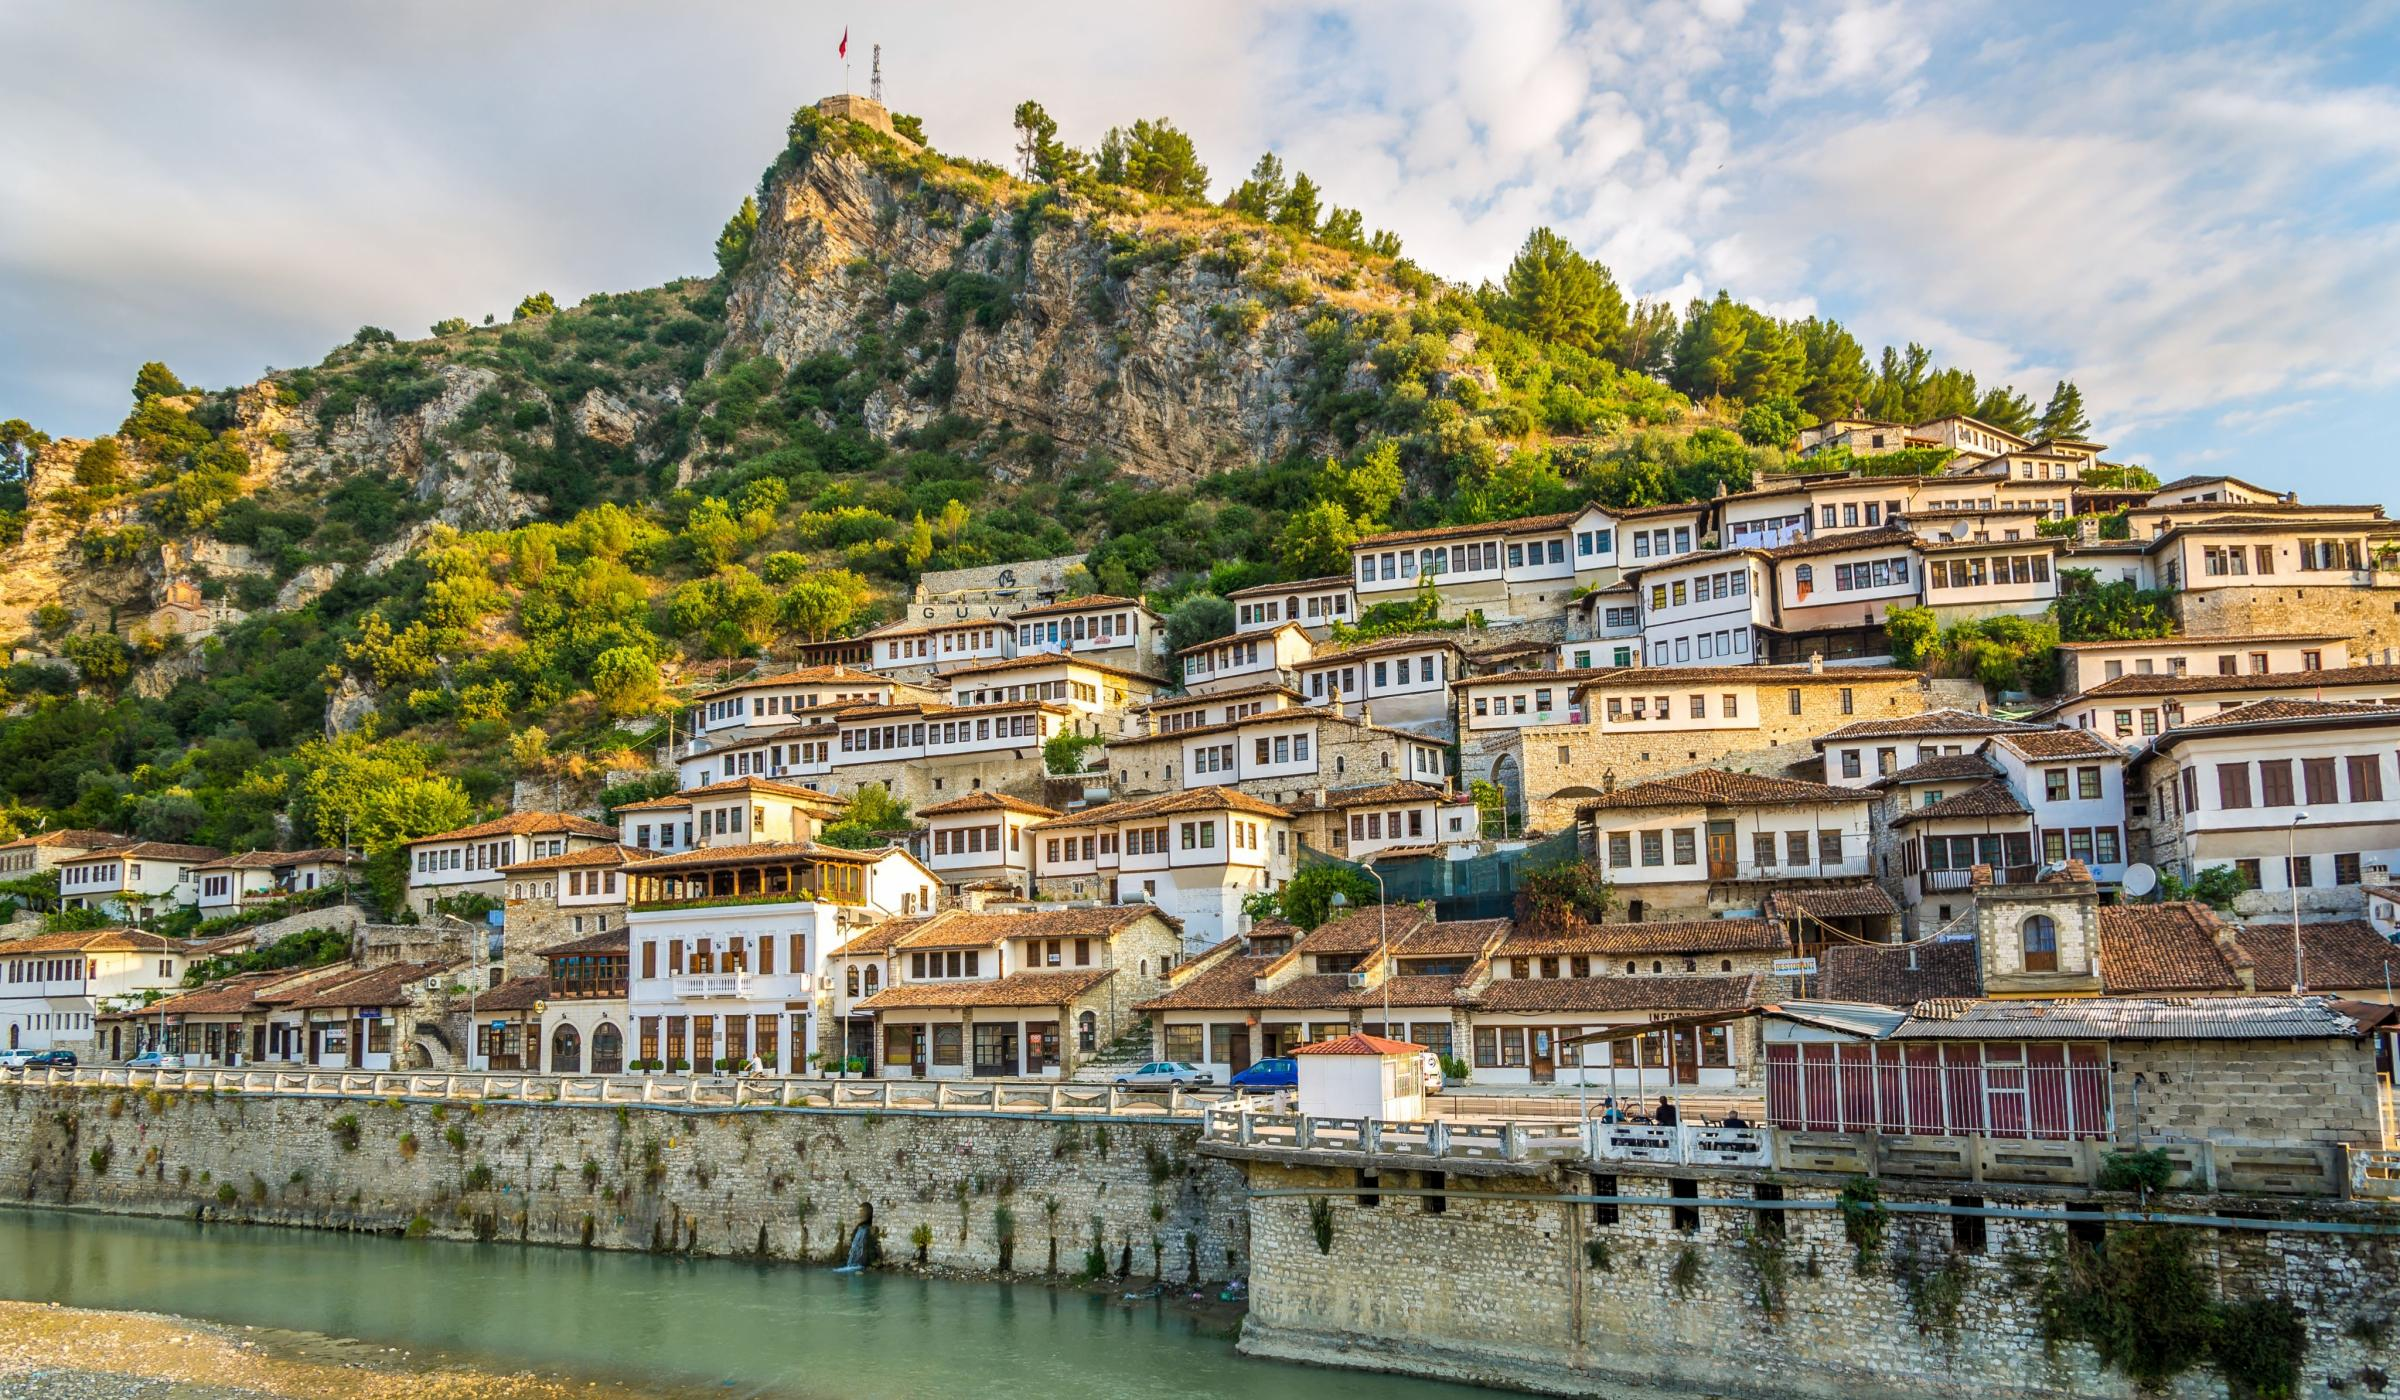 Berat Old City